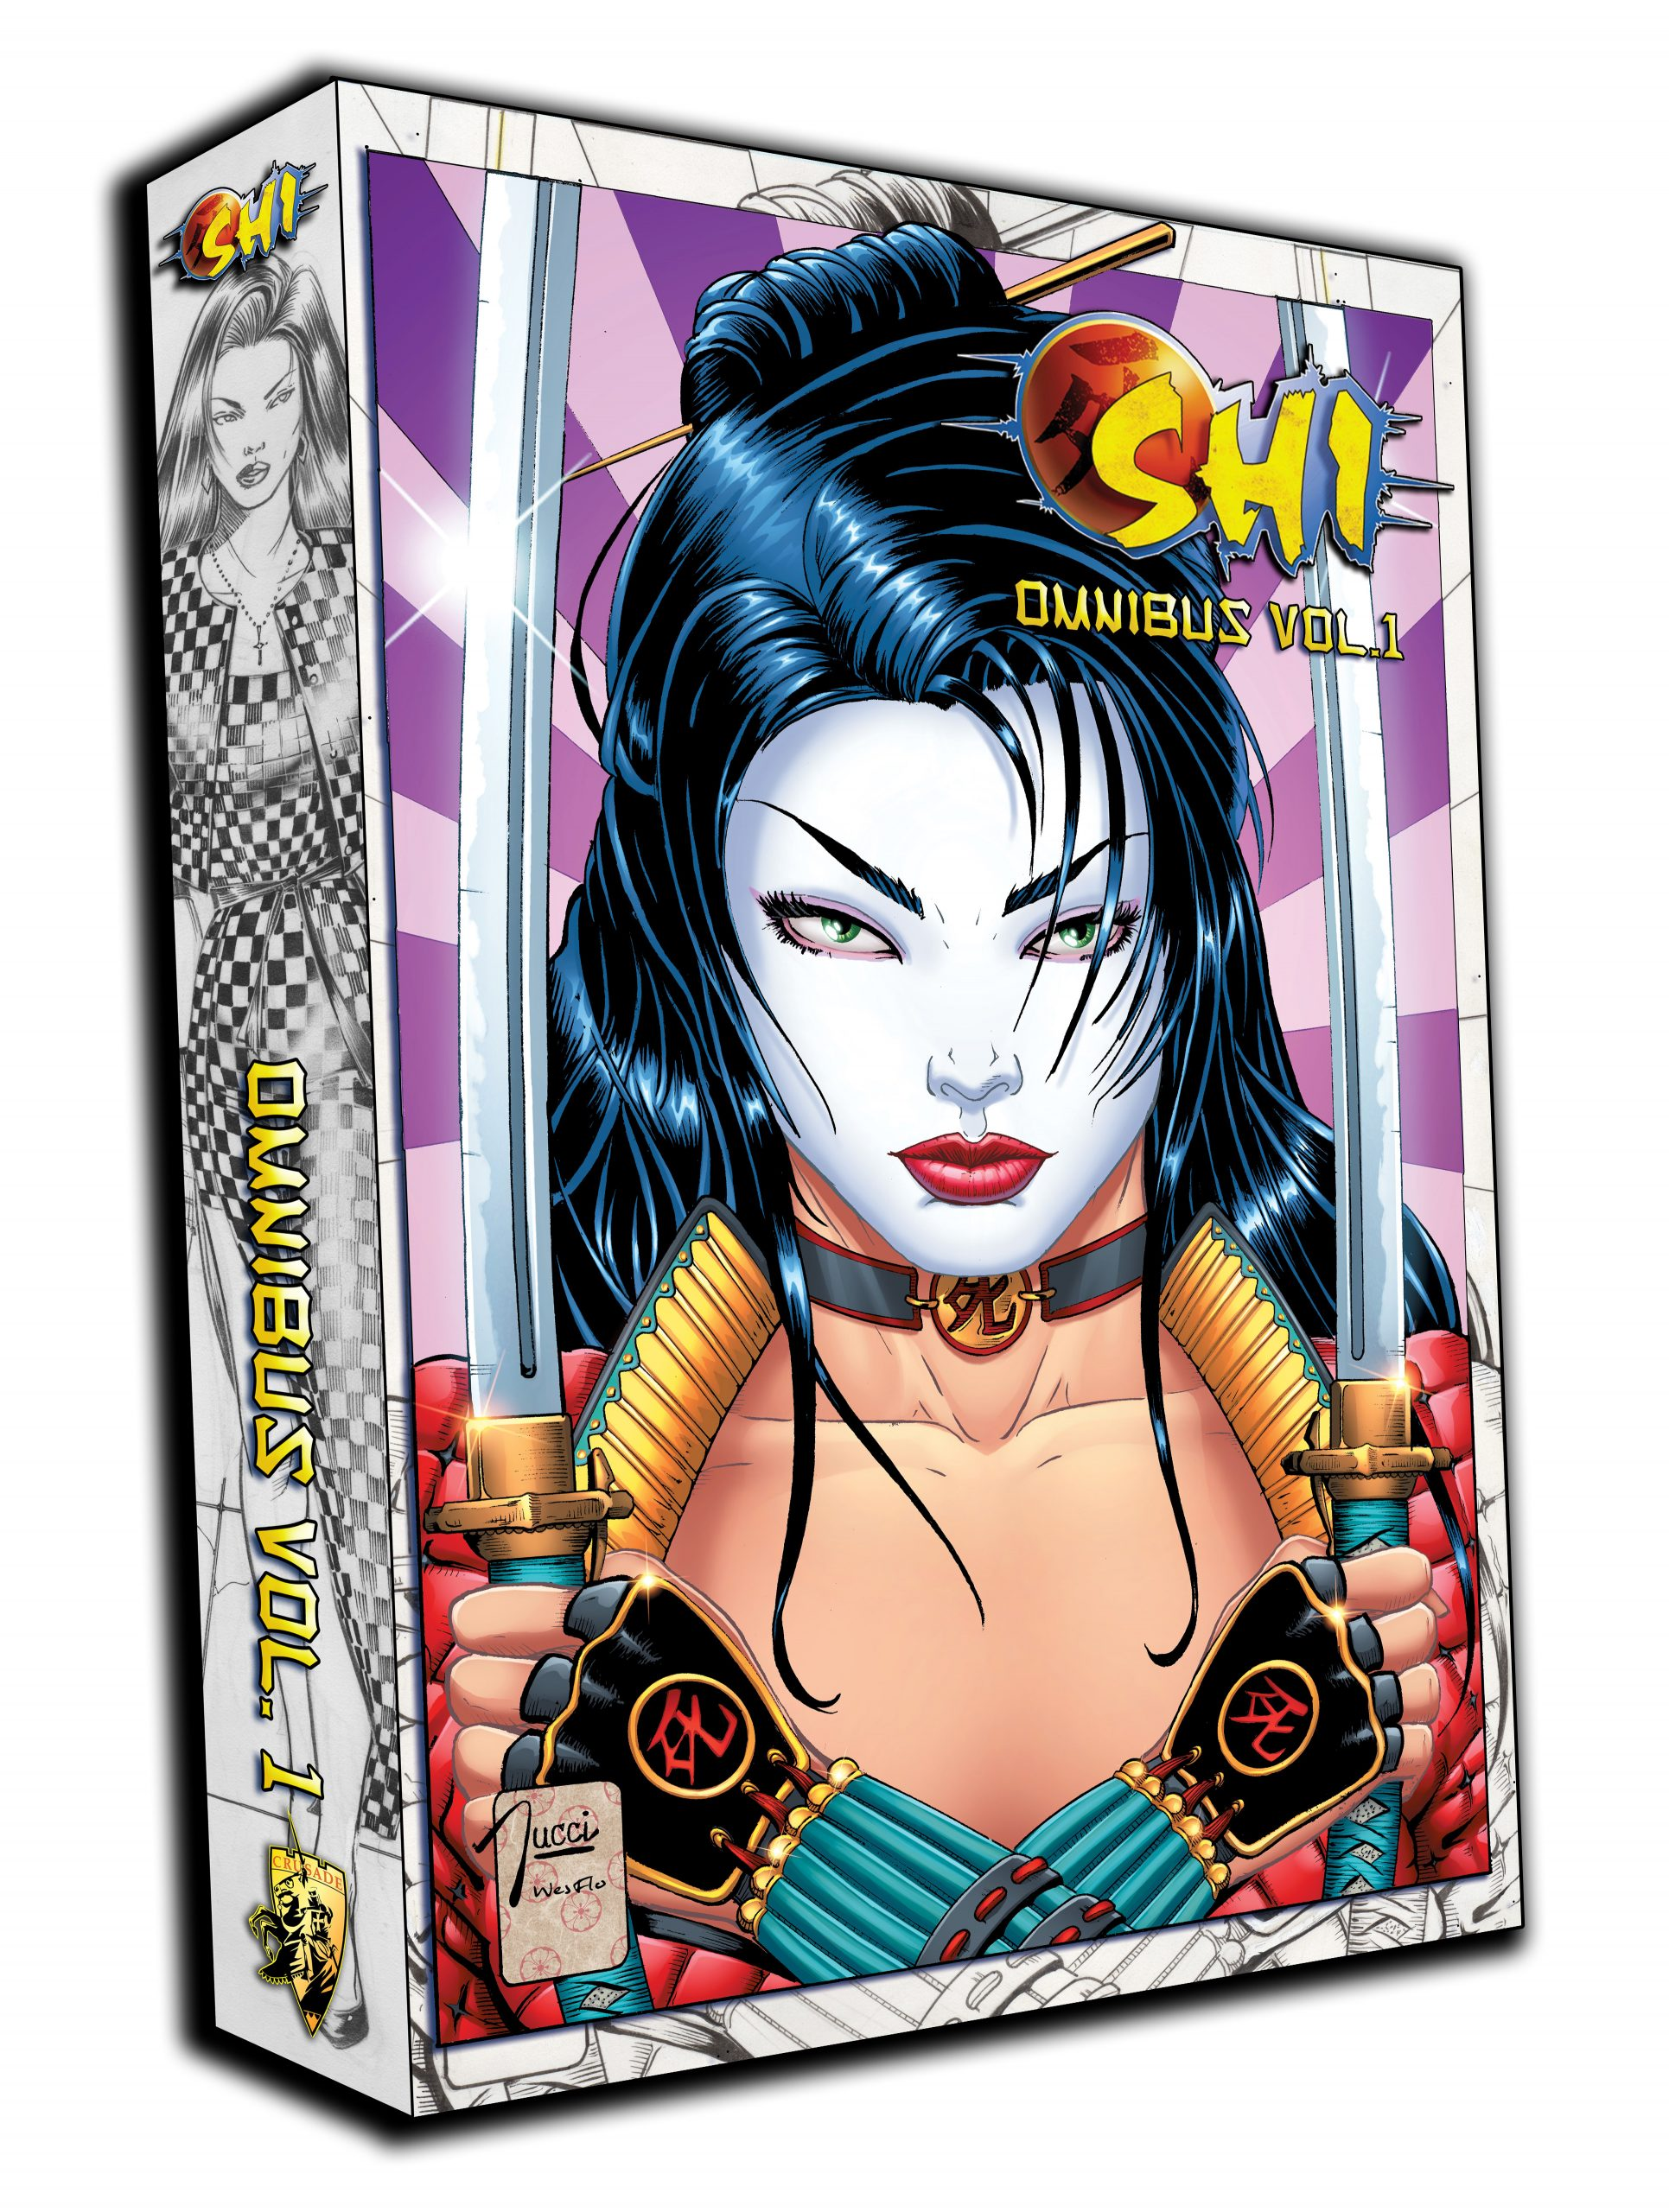 SHI OMNIBUS COVER FINAL not merged Spine3